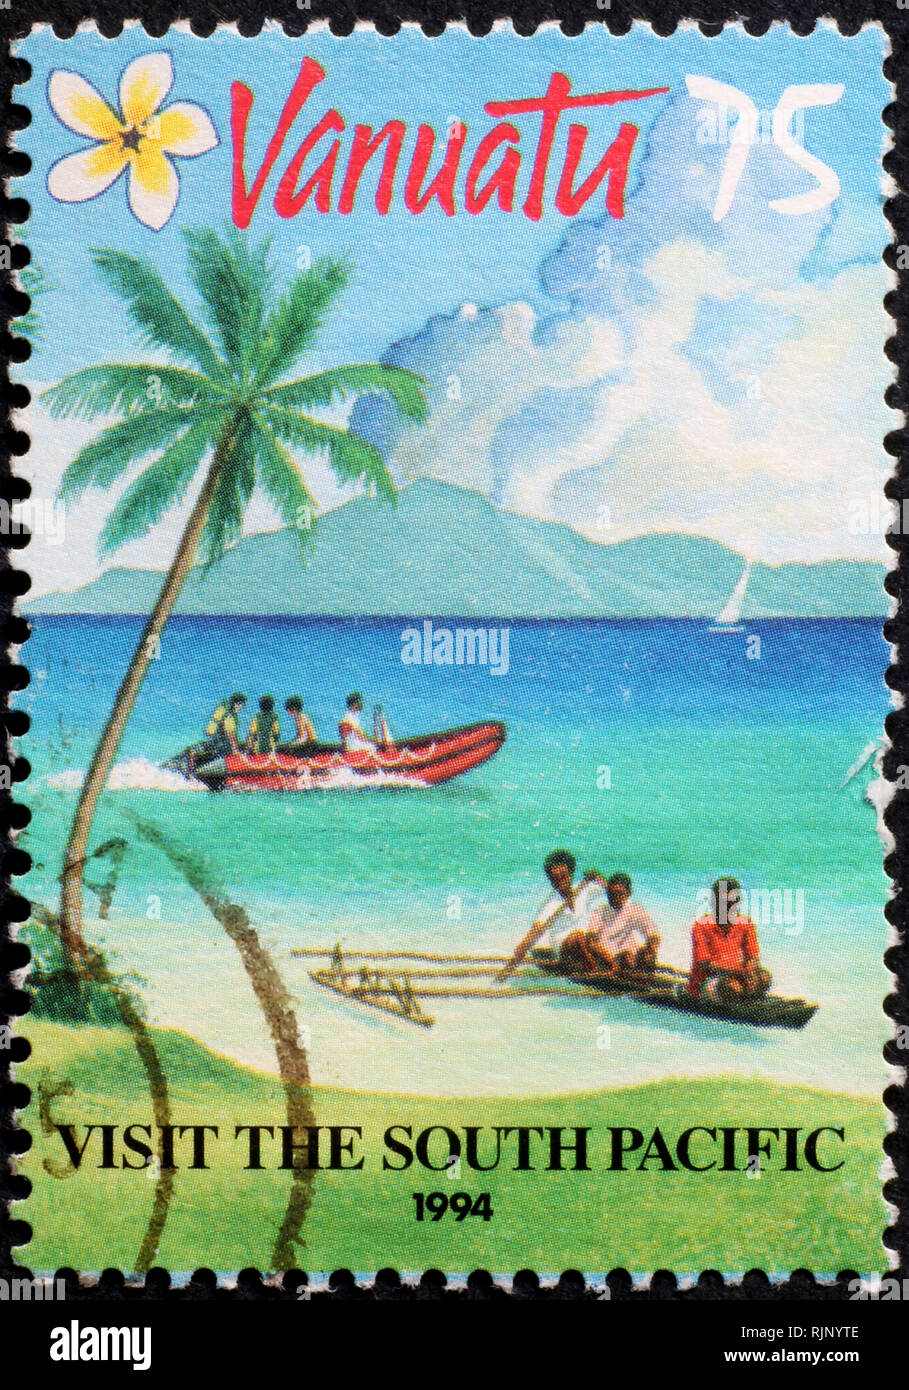 Touristic poster on postage stamp of Vanuatu islands - Stock Image